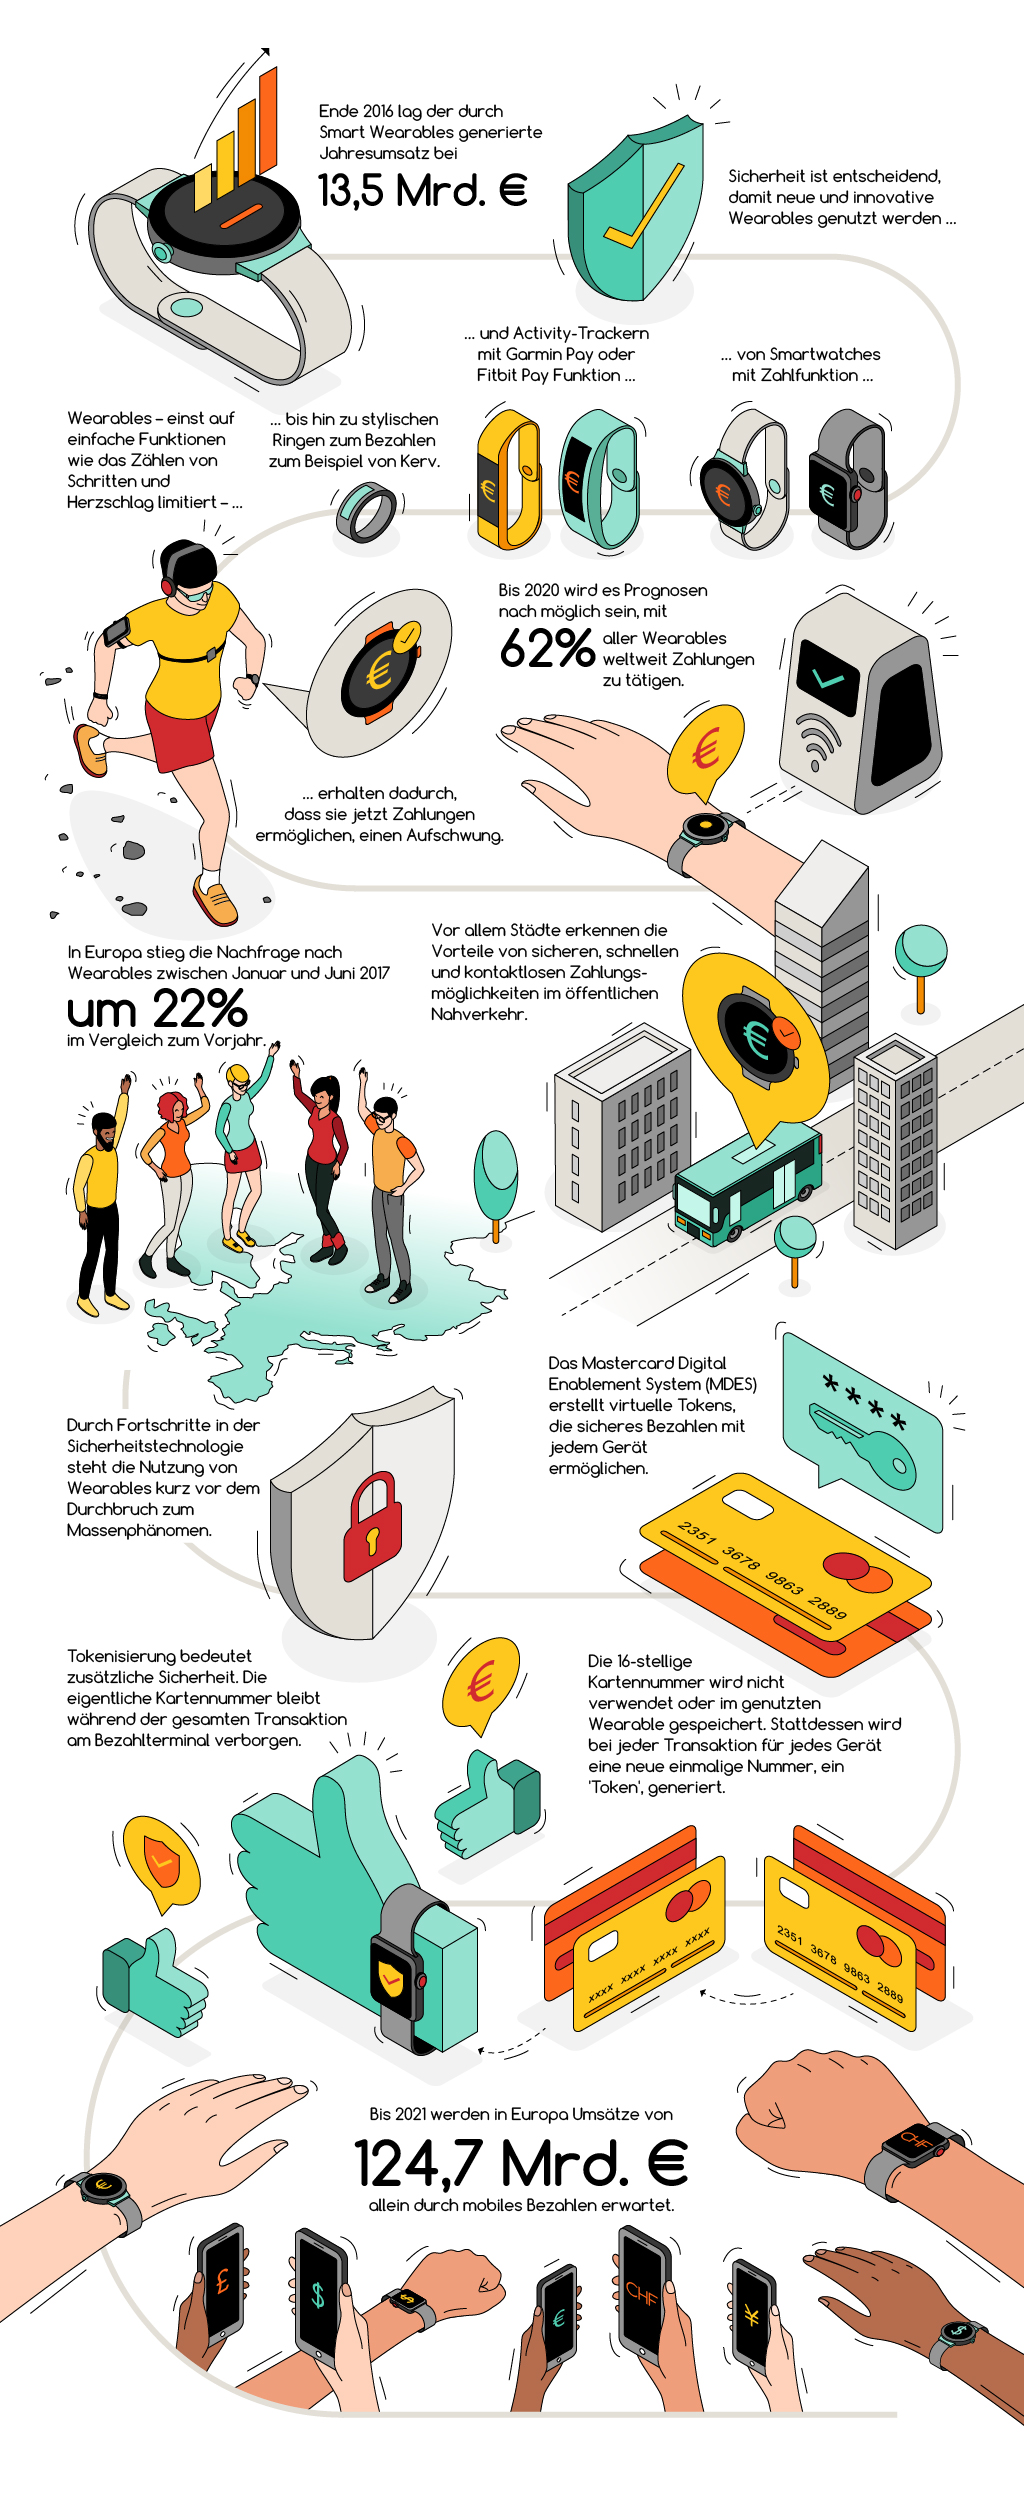 20180109_Mastercard Wearables Infographic_DE_FINAL